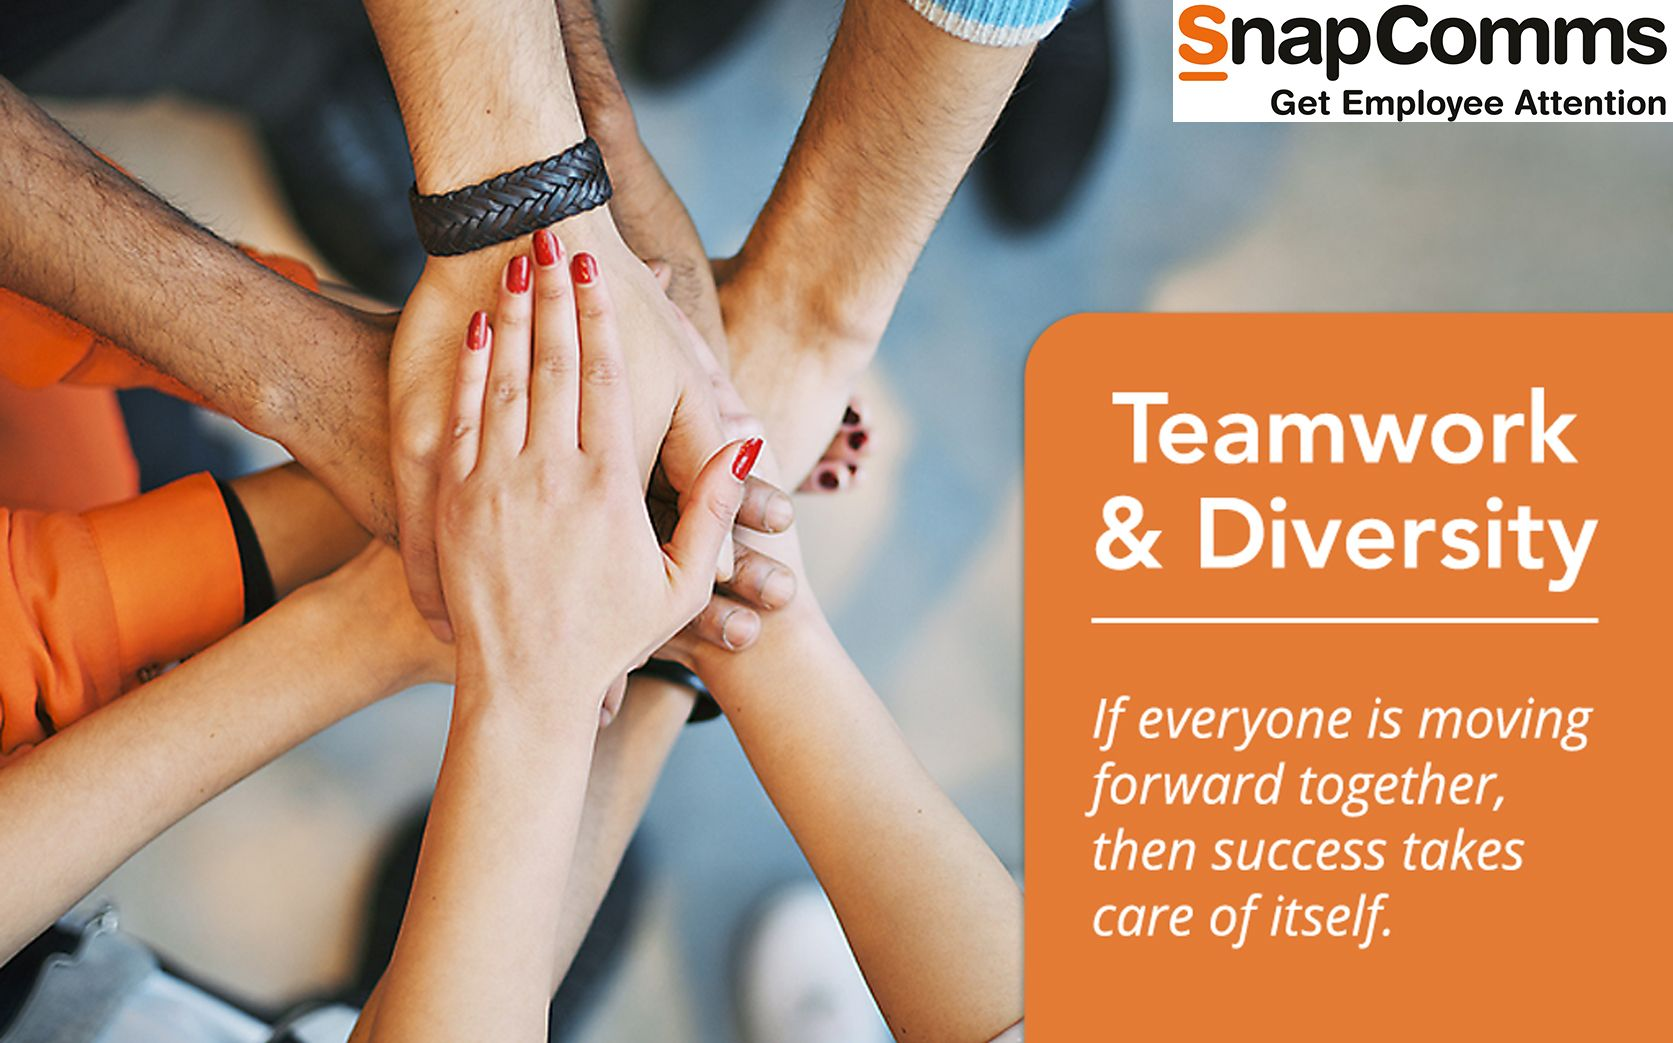 desktop teamwork and diversity example from snapcomms desktop teamwork and diversity example from snapcomms com